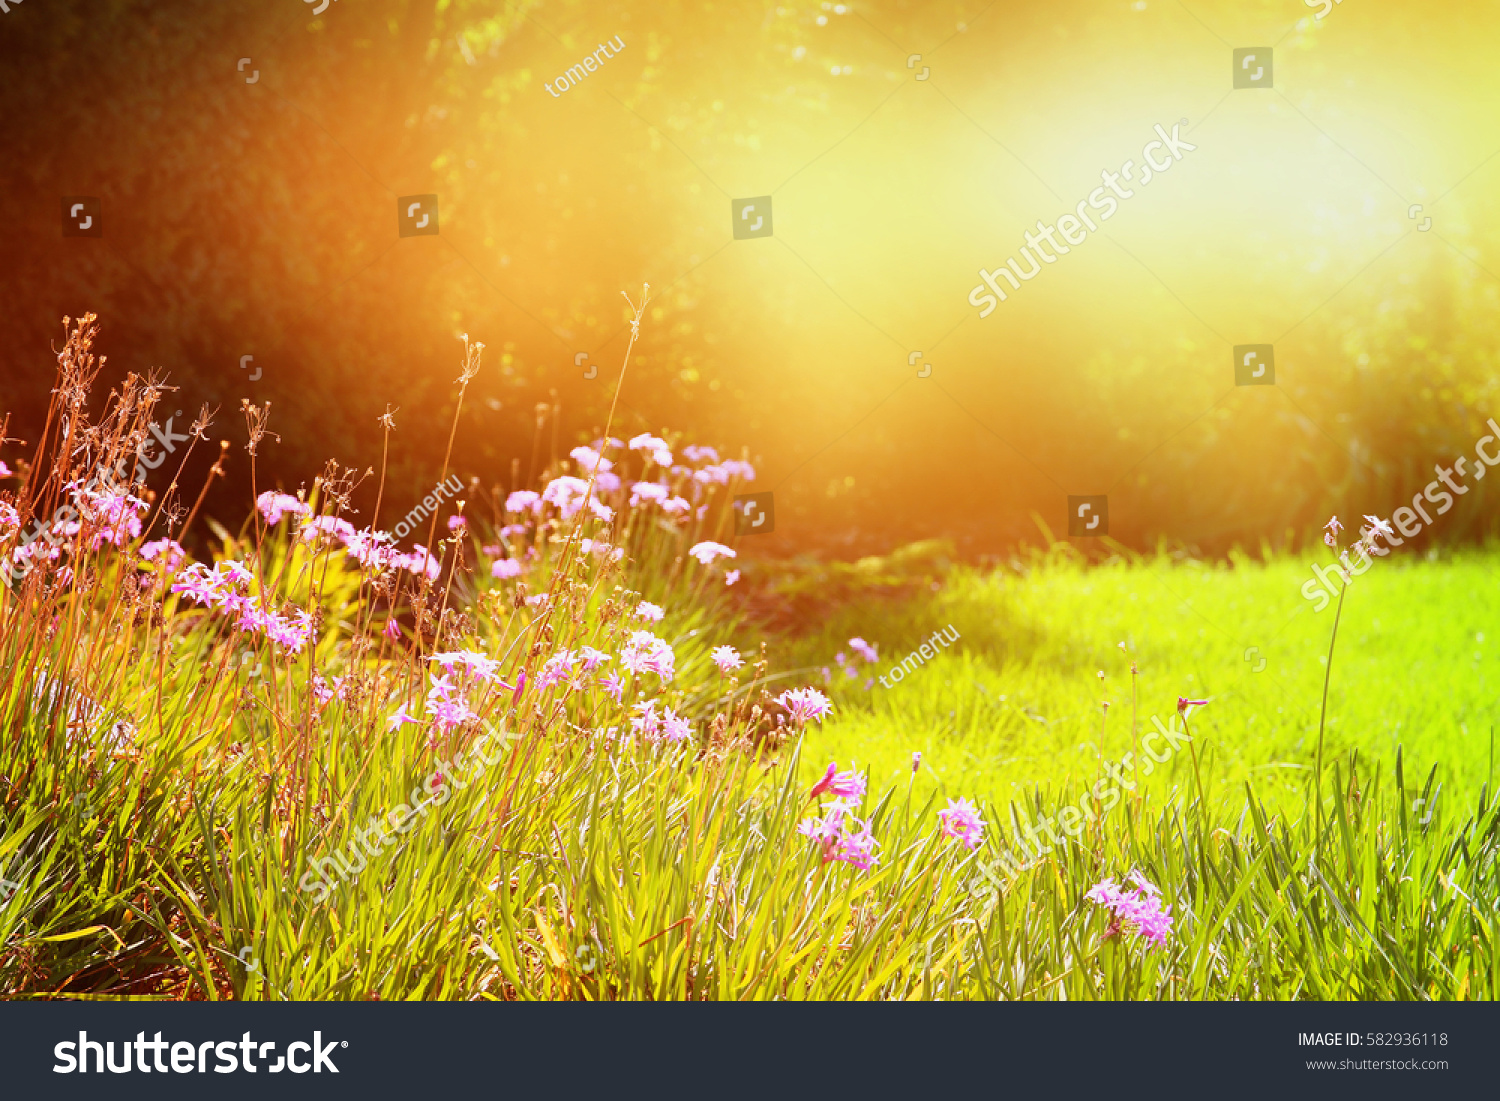 abstract dreamy photo spring meadow wildflowers stock photo (royalty